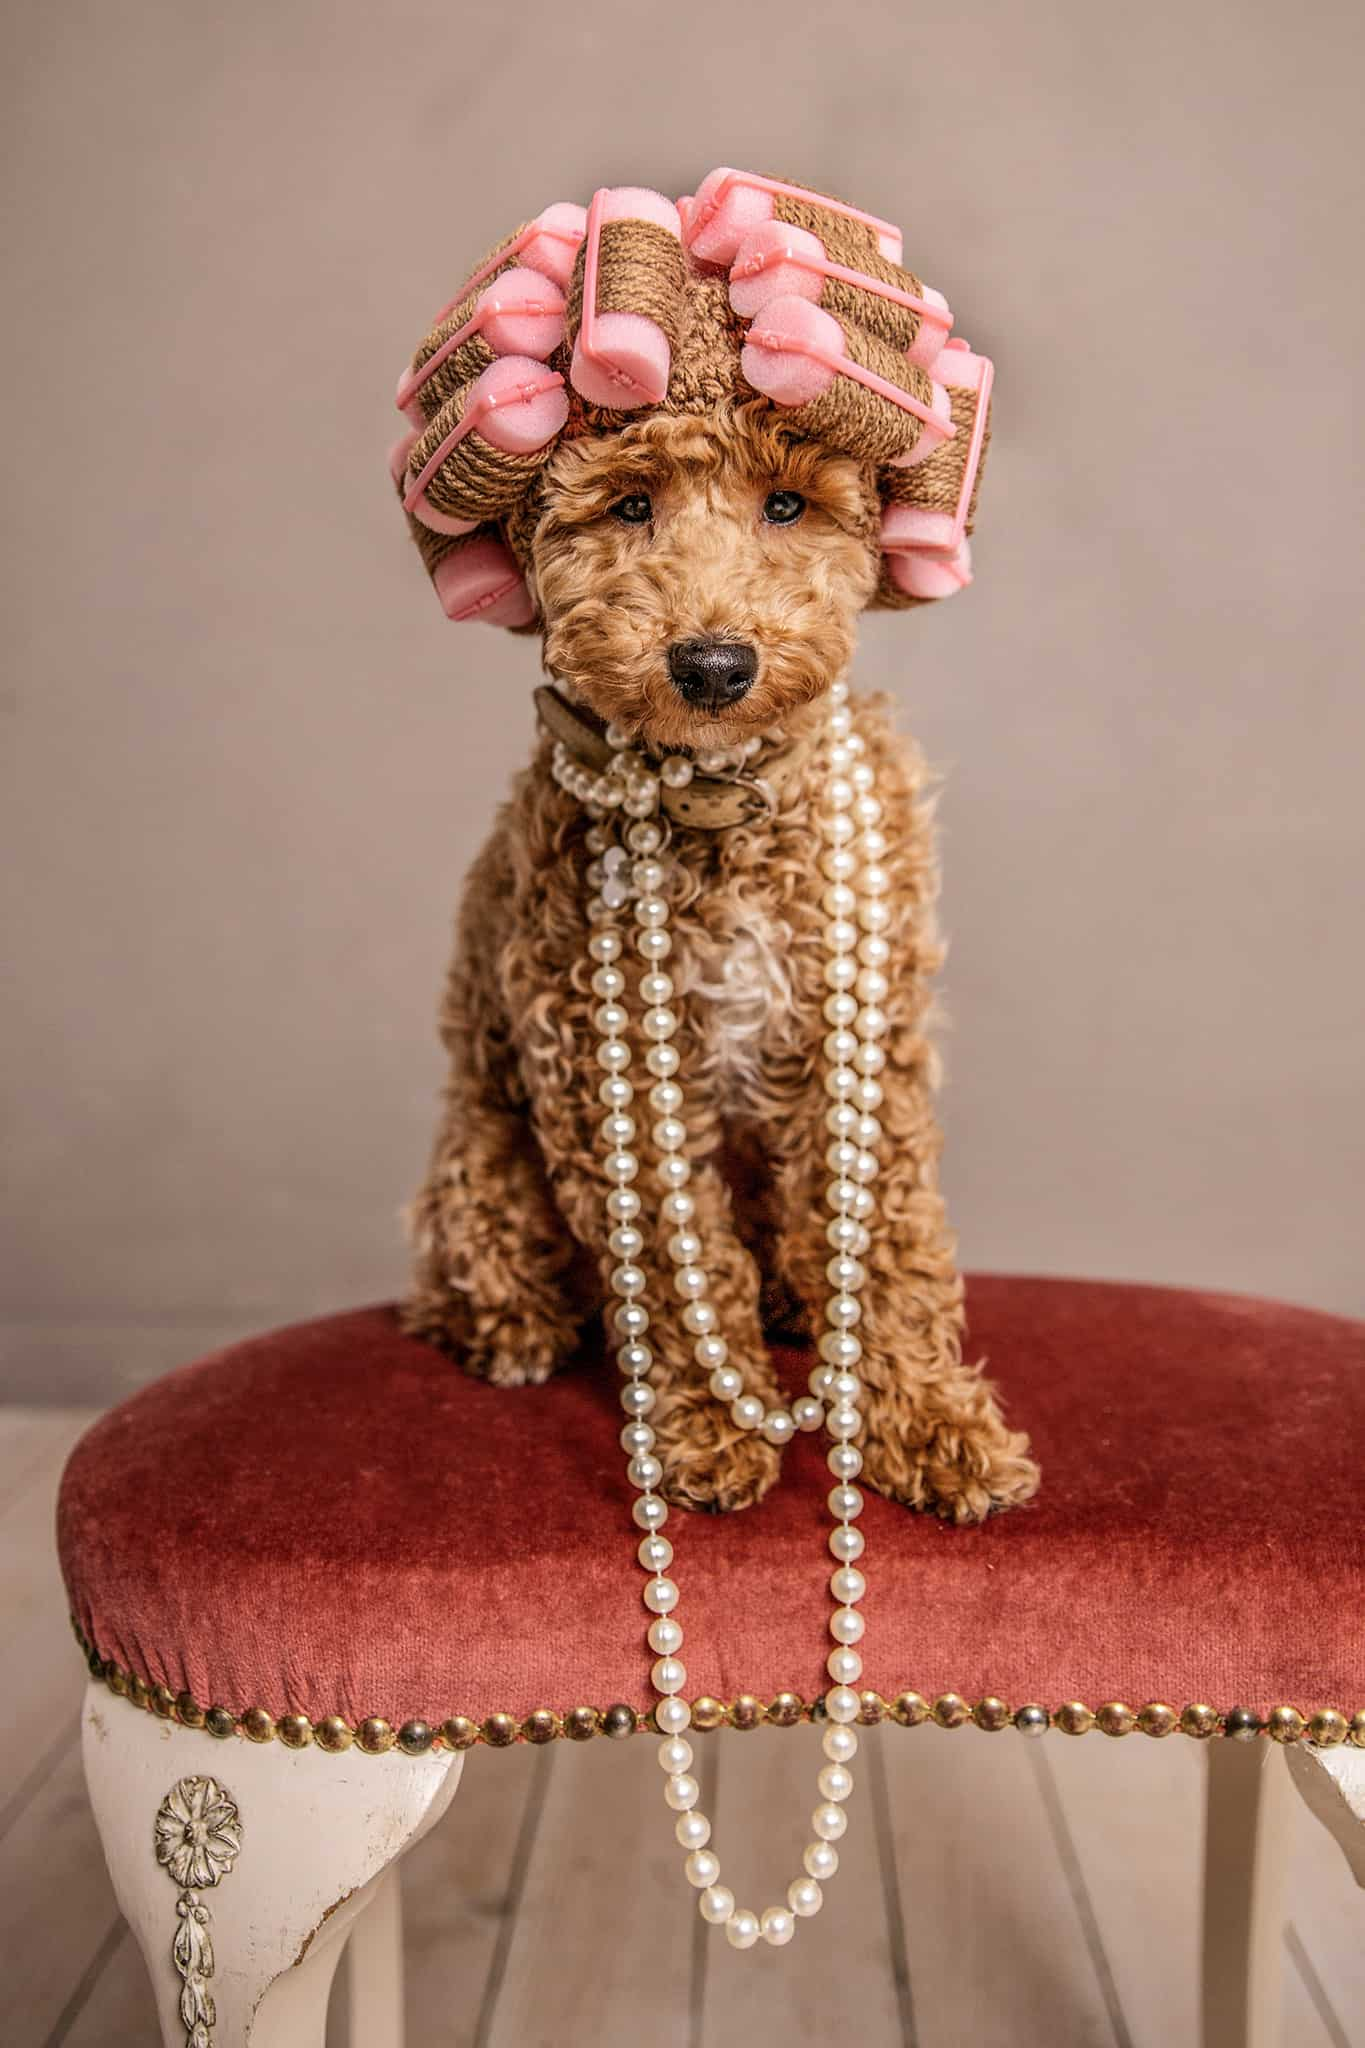 a poodle wearing curlers and a long necklace